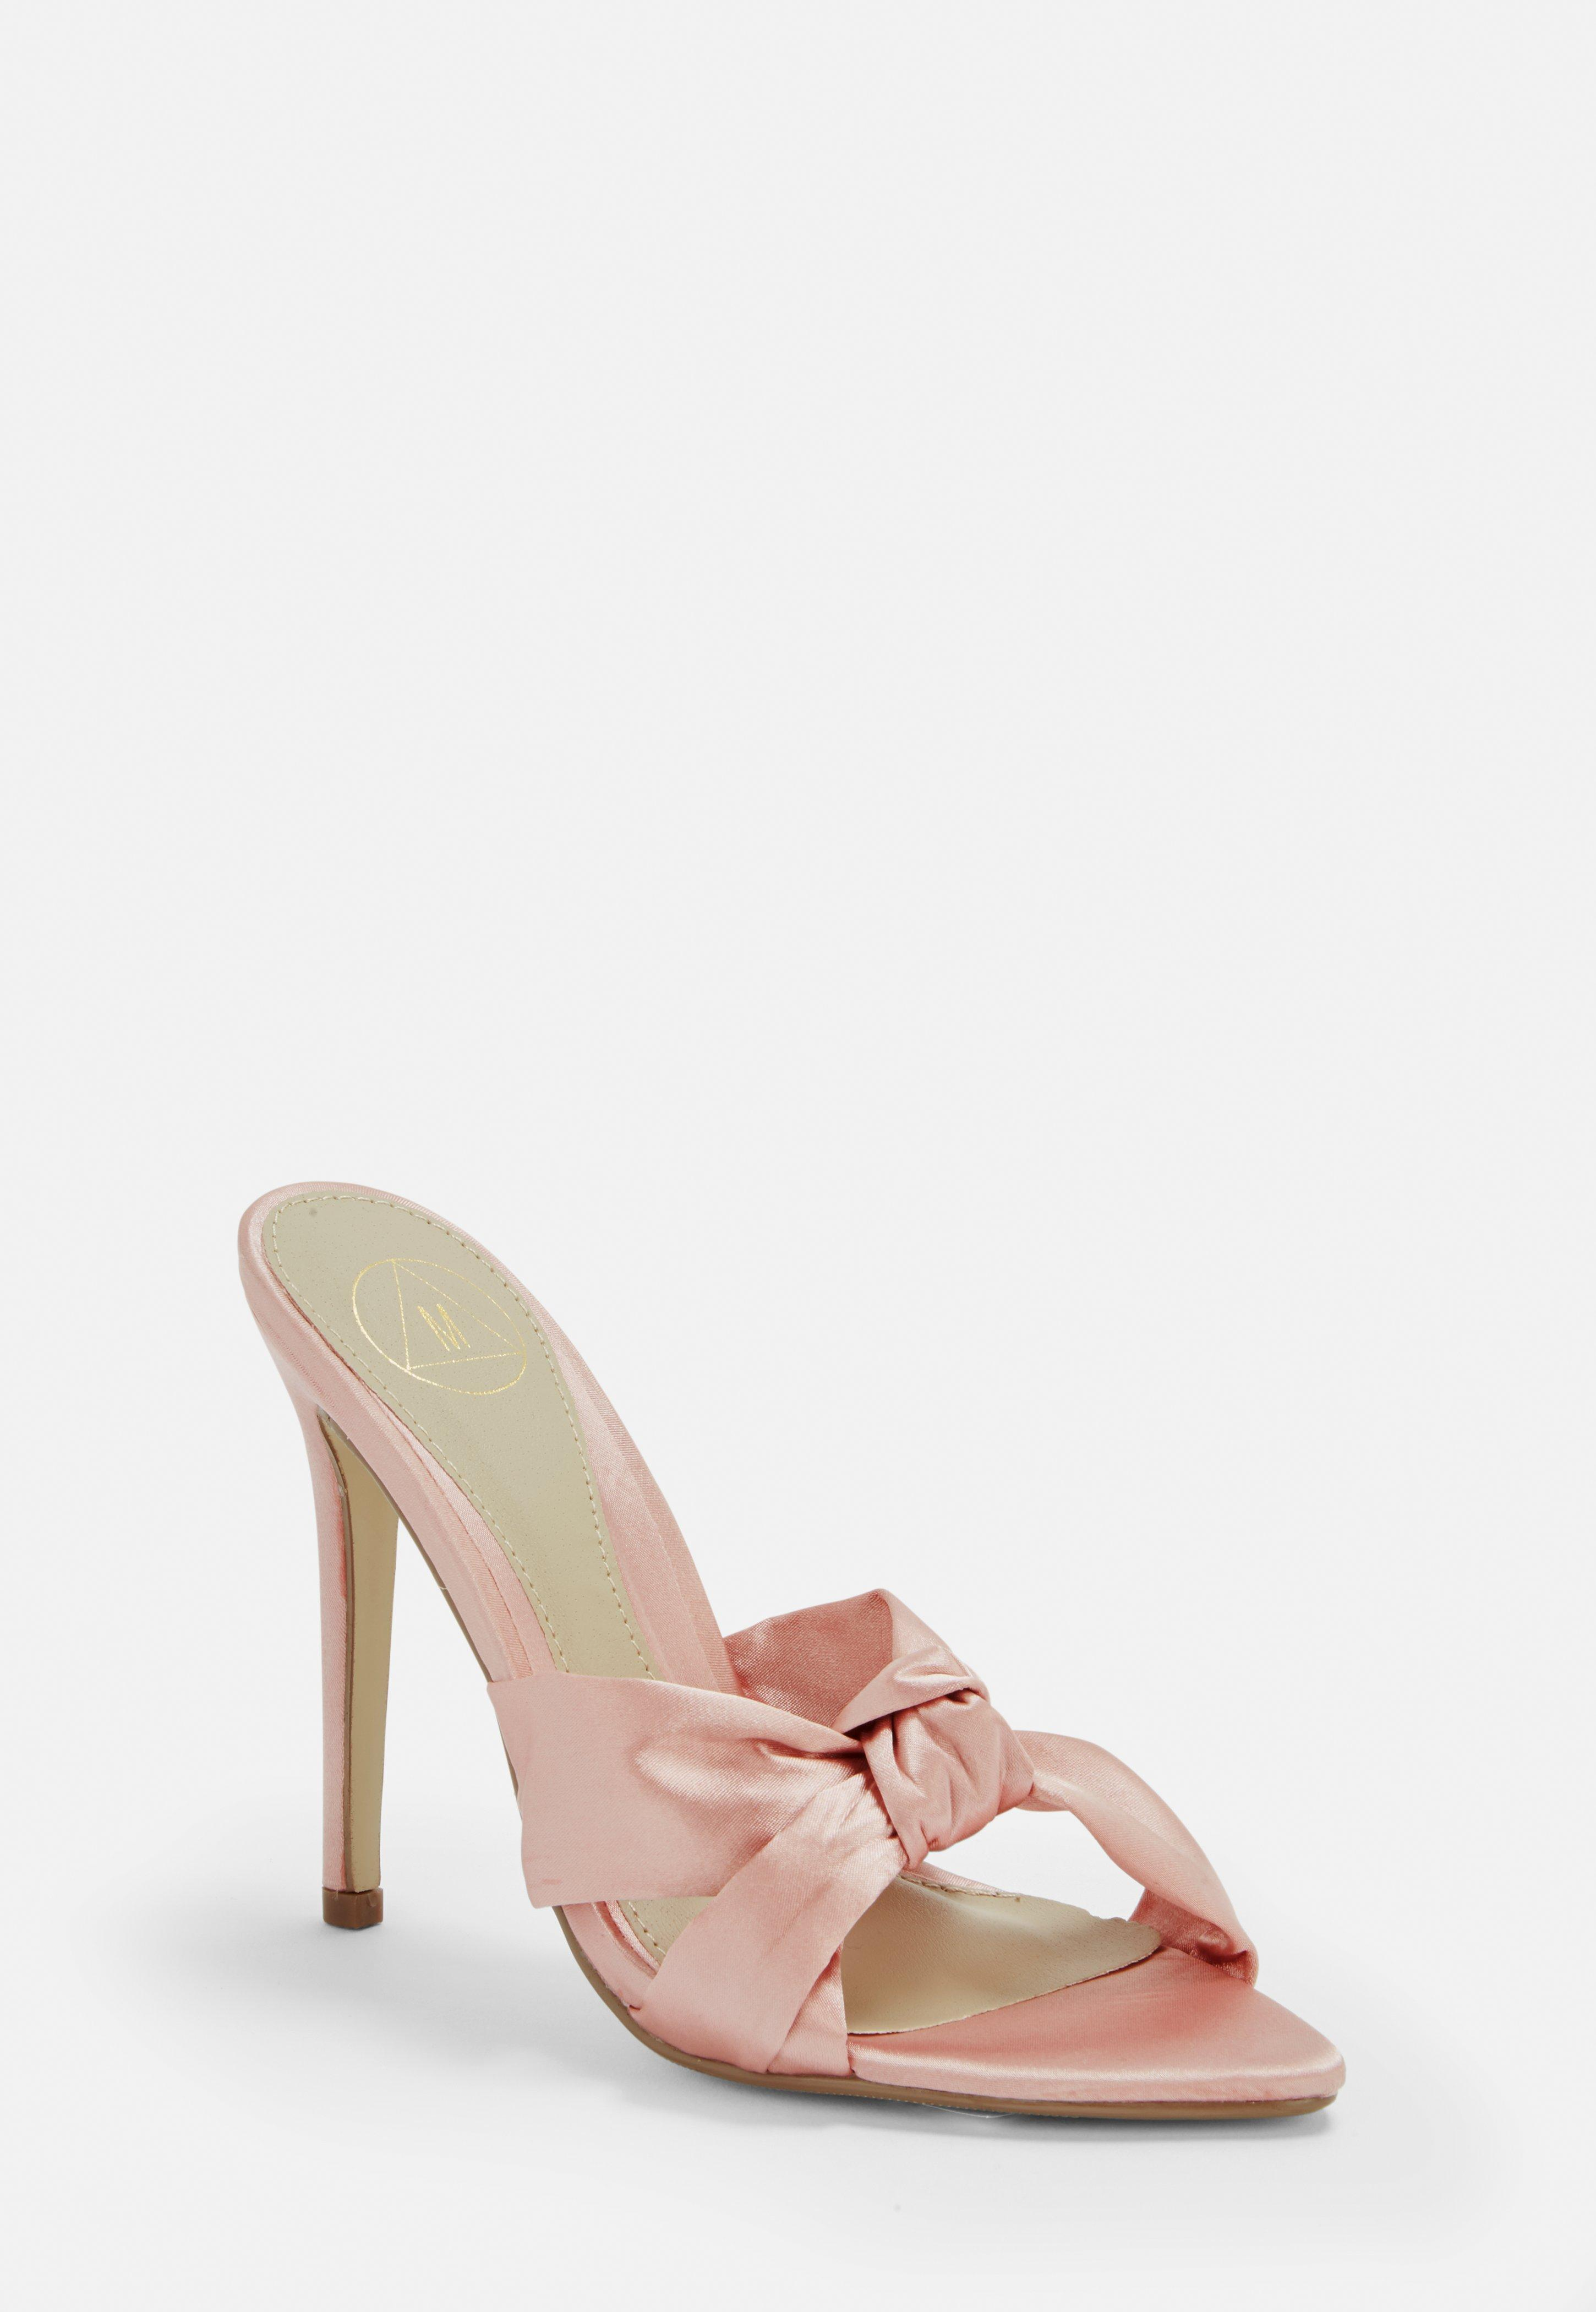 d71aca573dc Lyst - Missguided Pink Pointed Satin Bow Mules in Pink